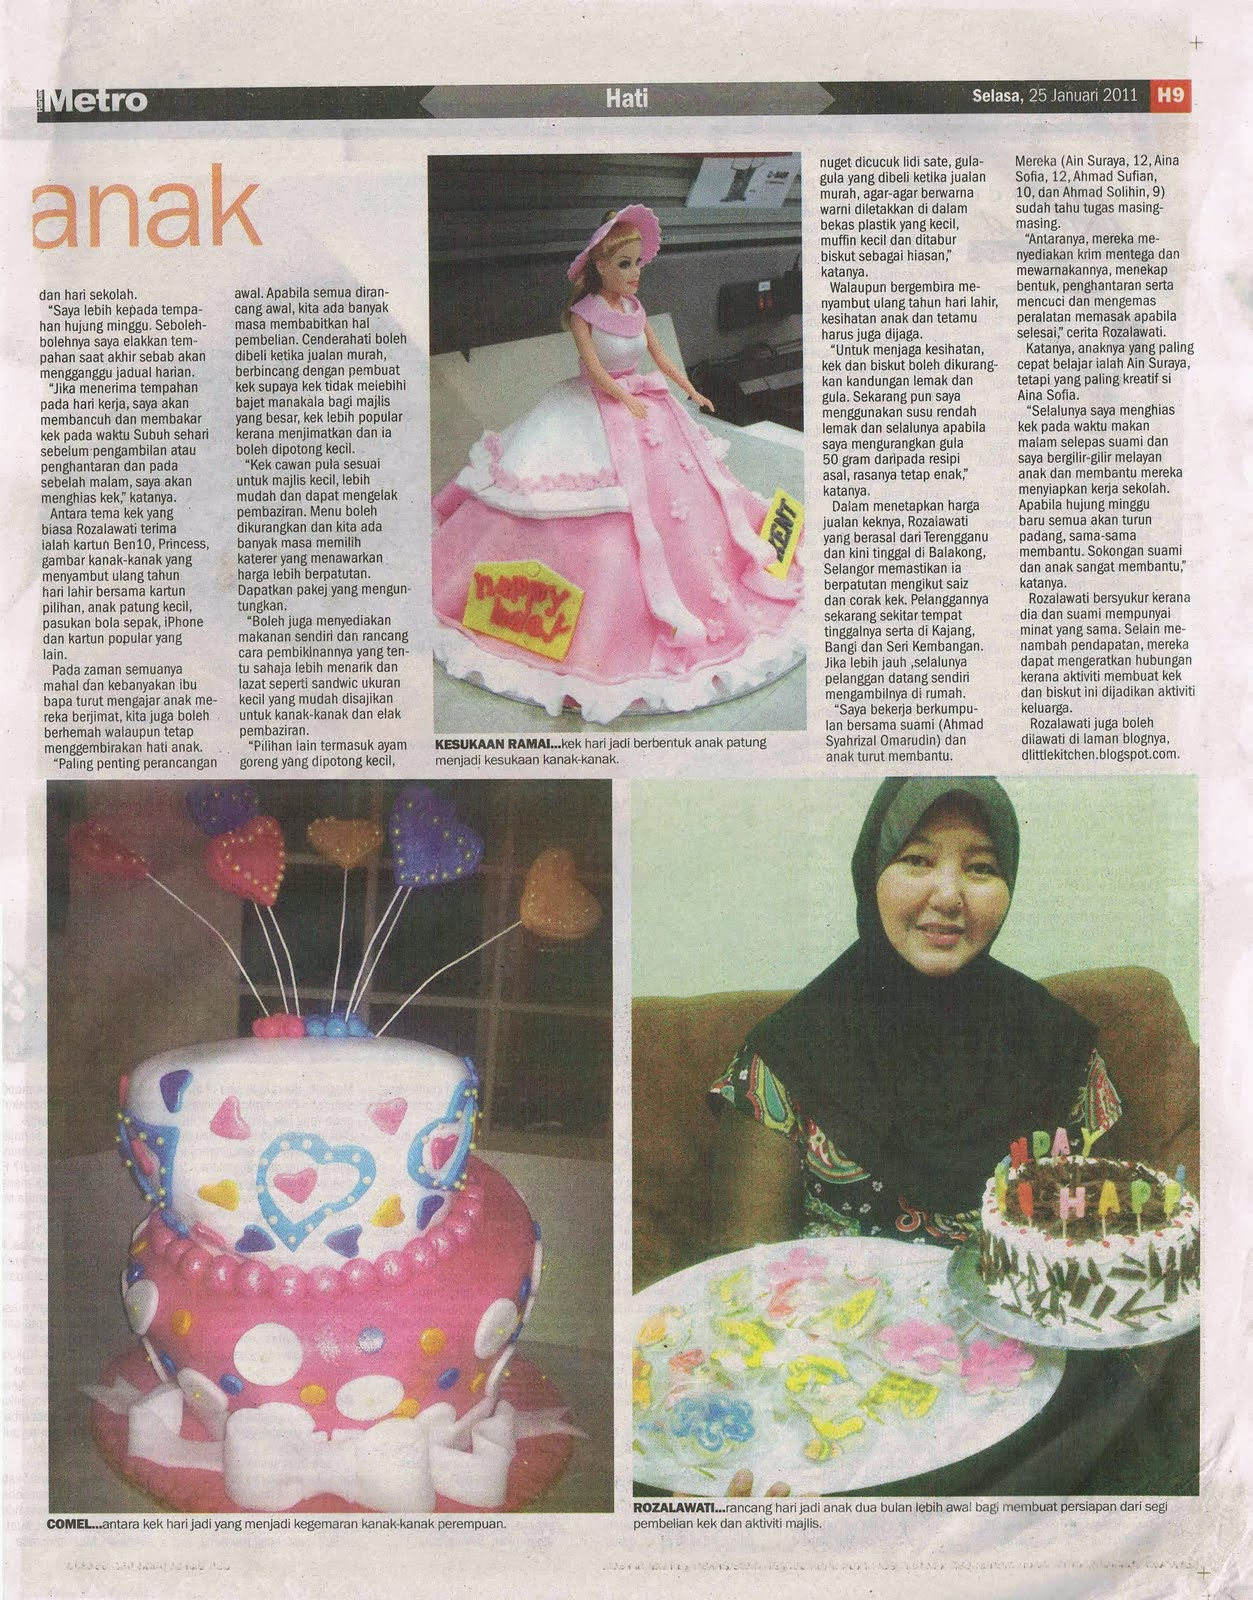 d'little kitchen in Harian Metro I